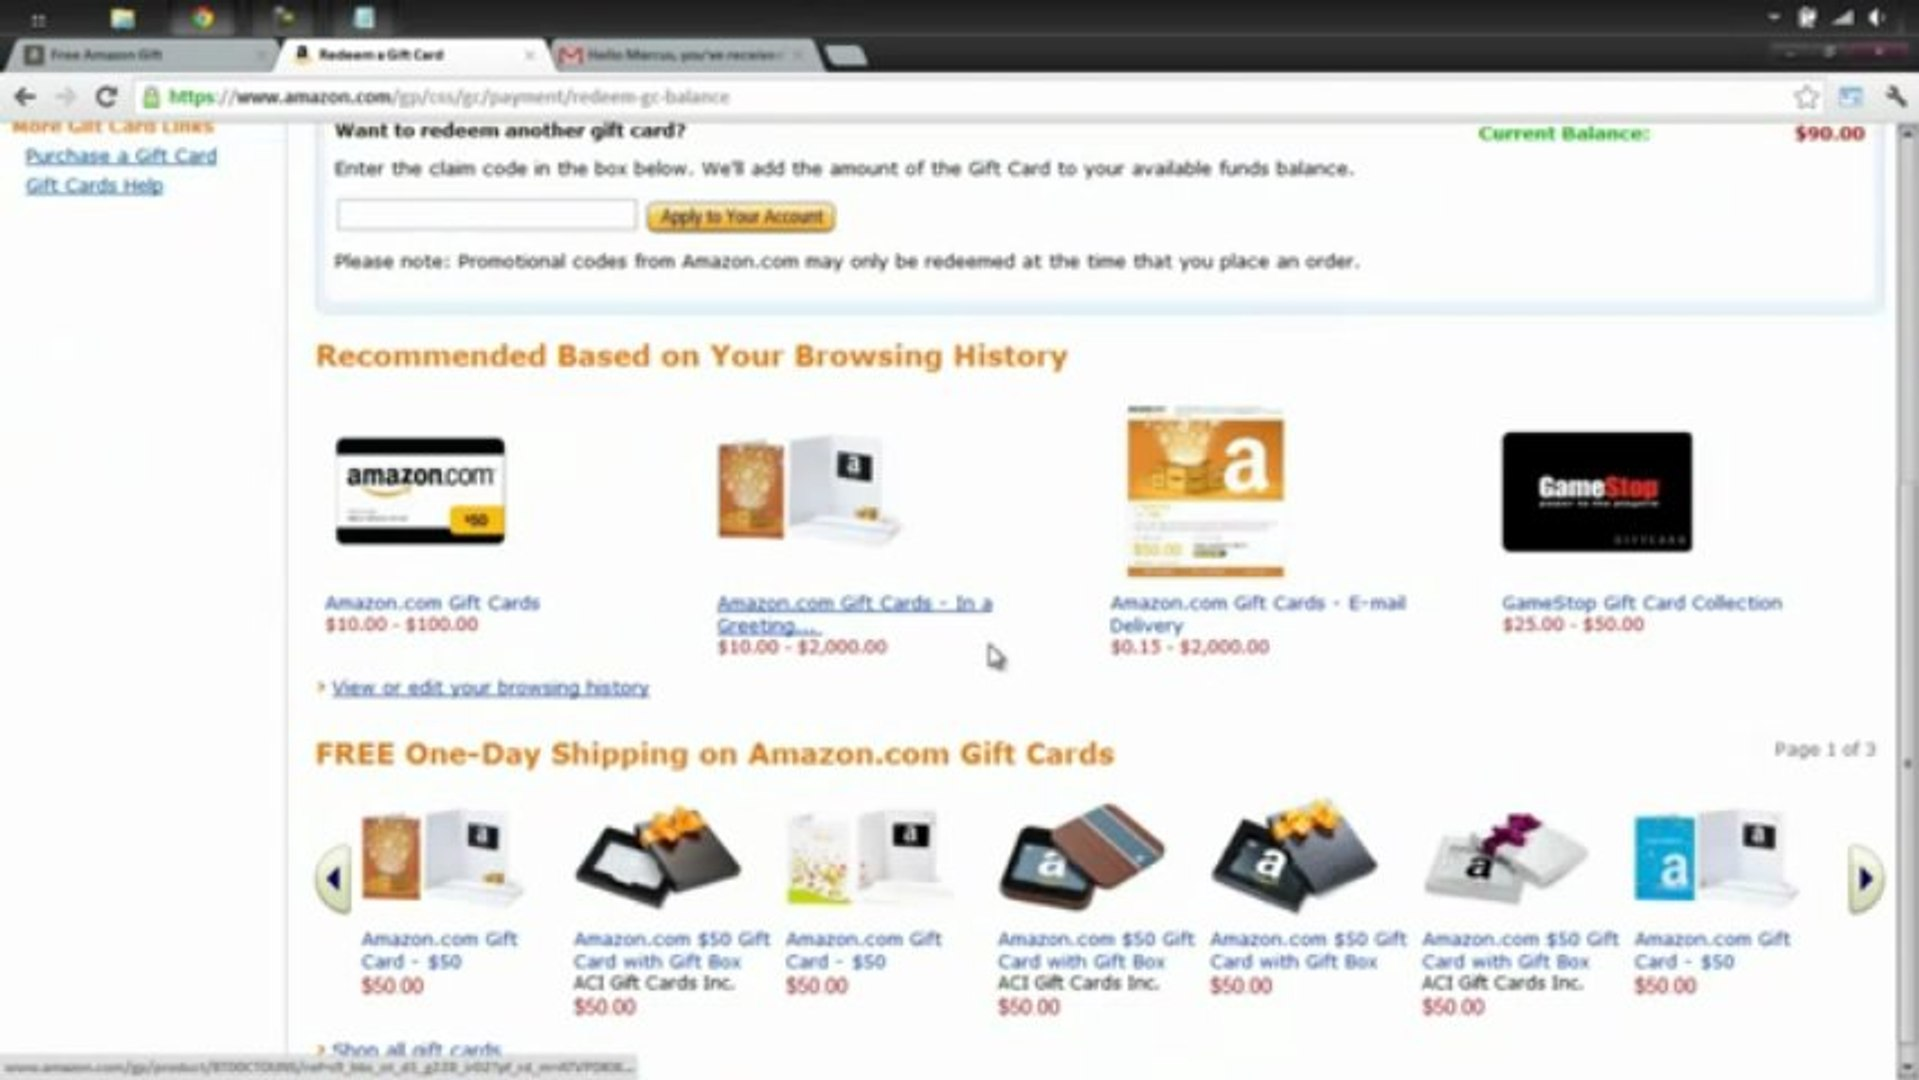 Legit How to Get Free Amazon Gift Card Codes - Free Amazon Codes with Proofs 2012